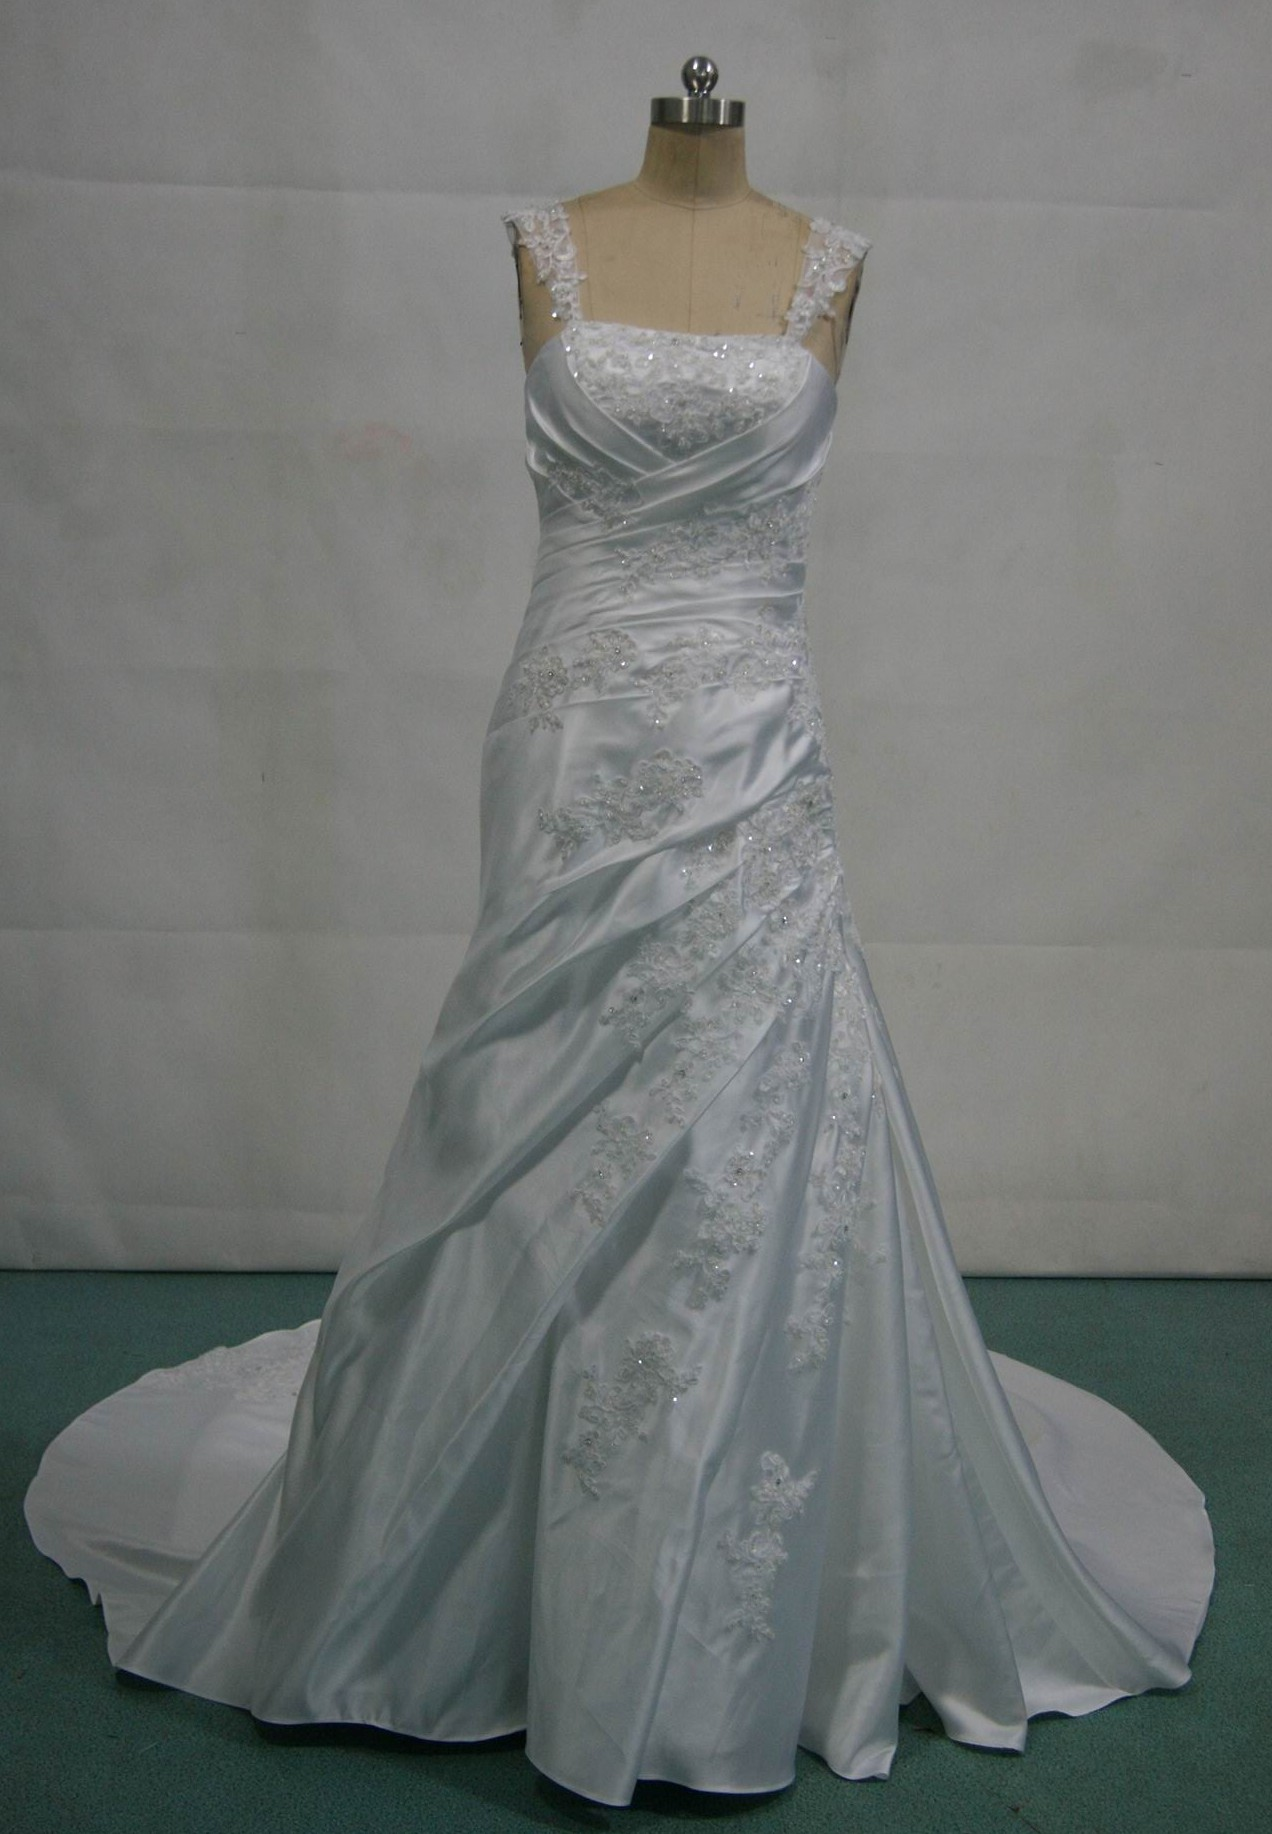 Draped A-line wedding gown